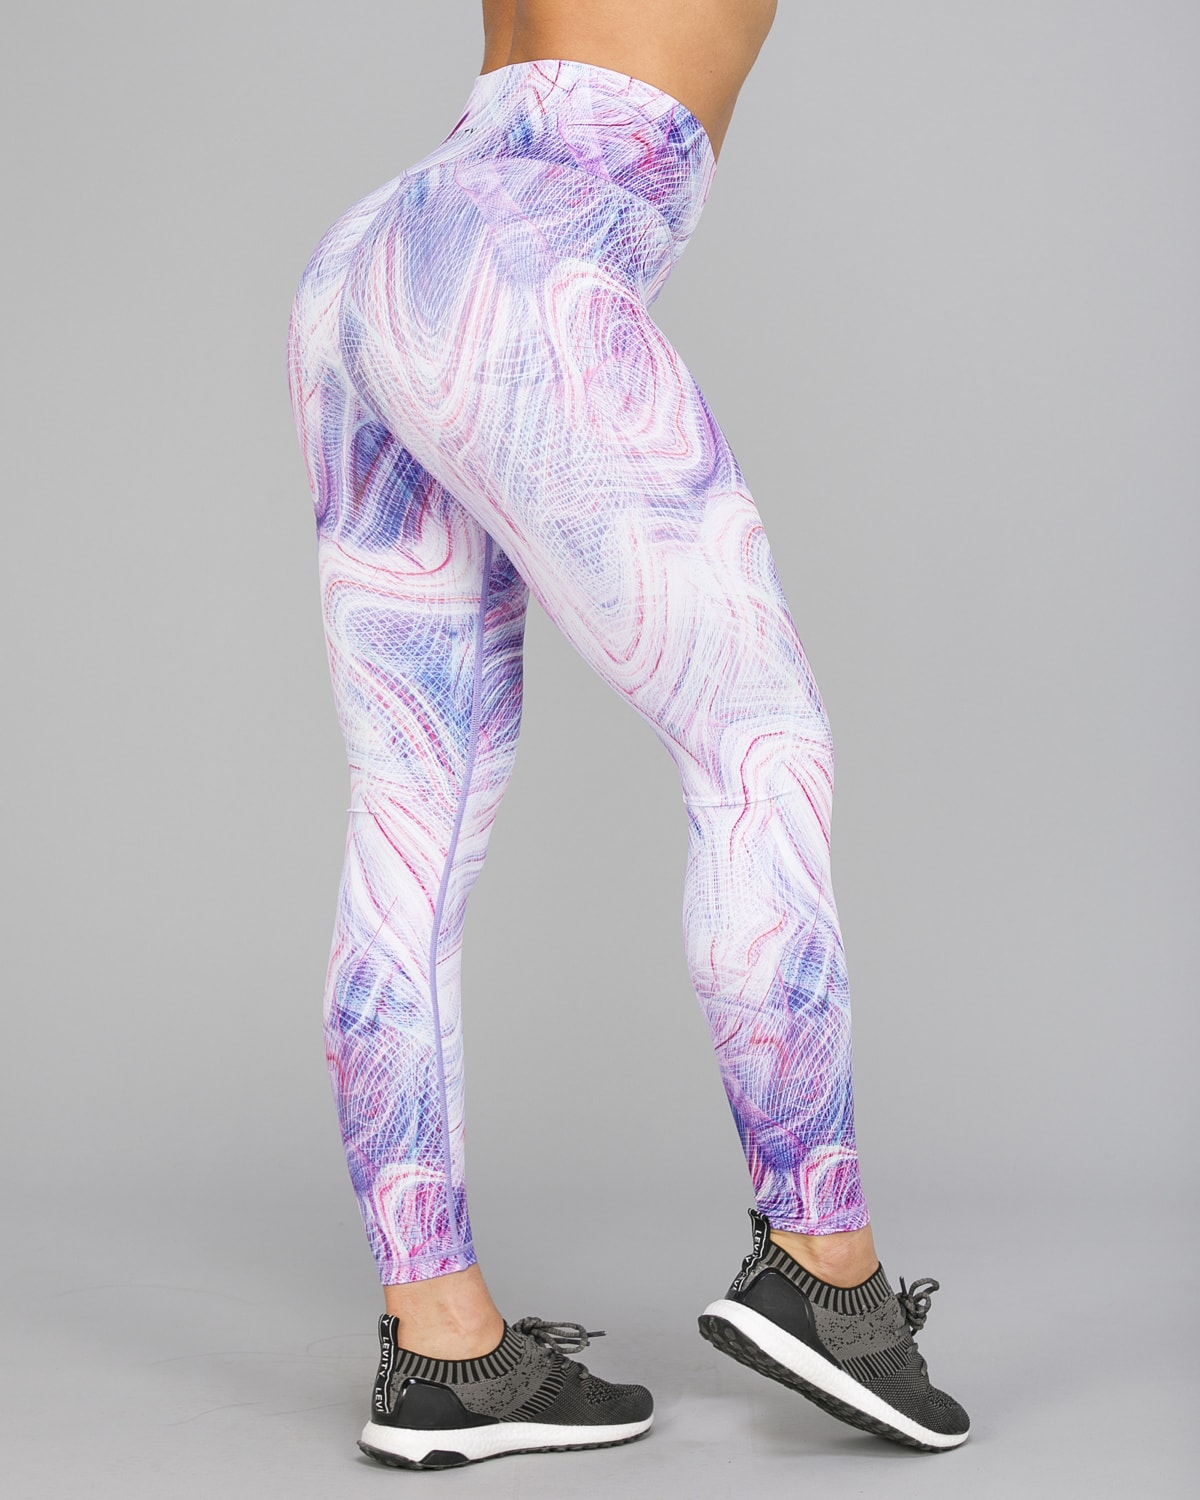 LEVITY Space Mineral Tights10